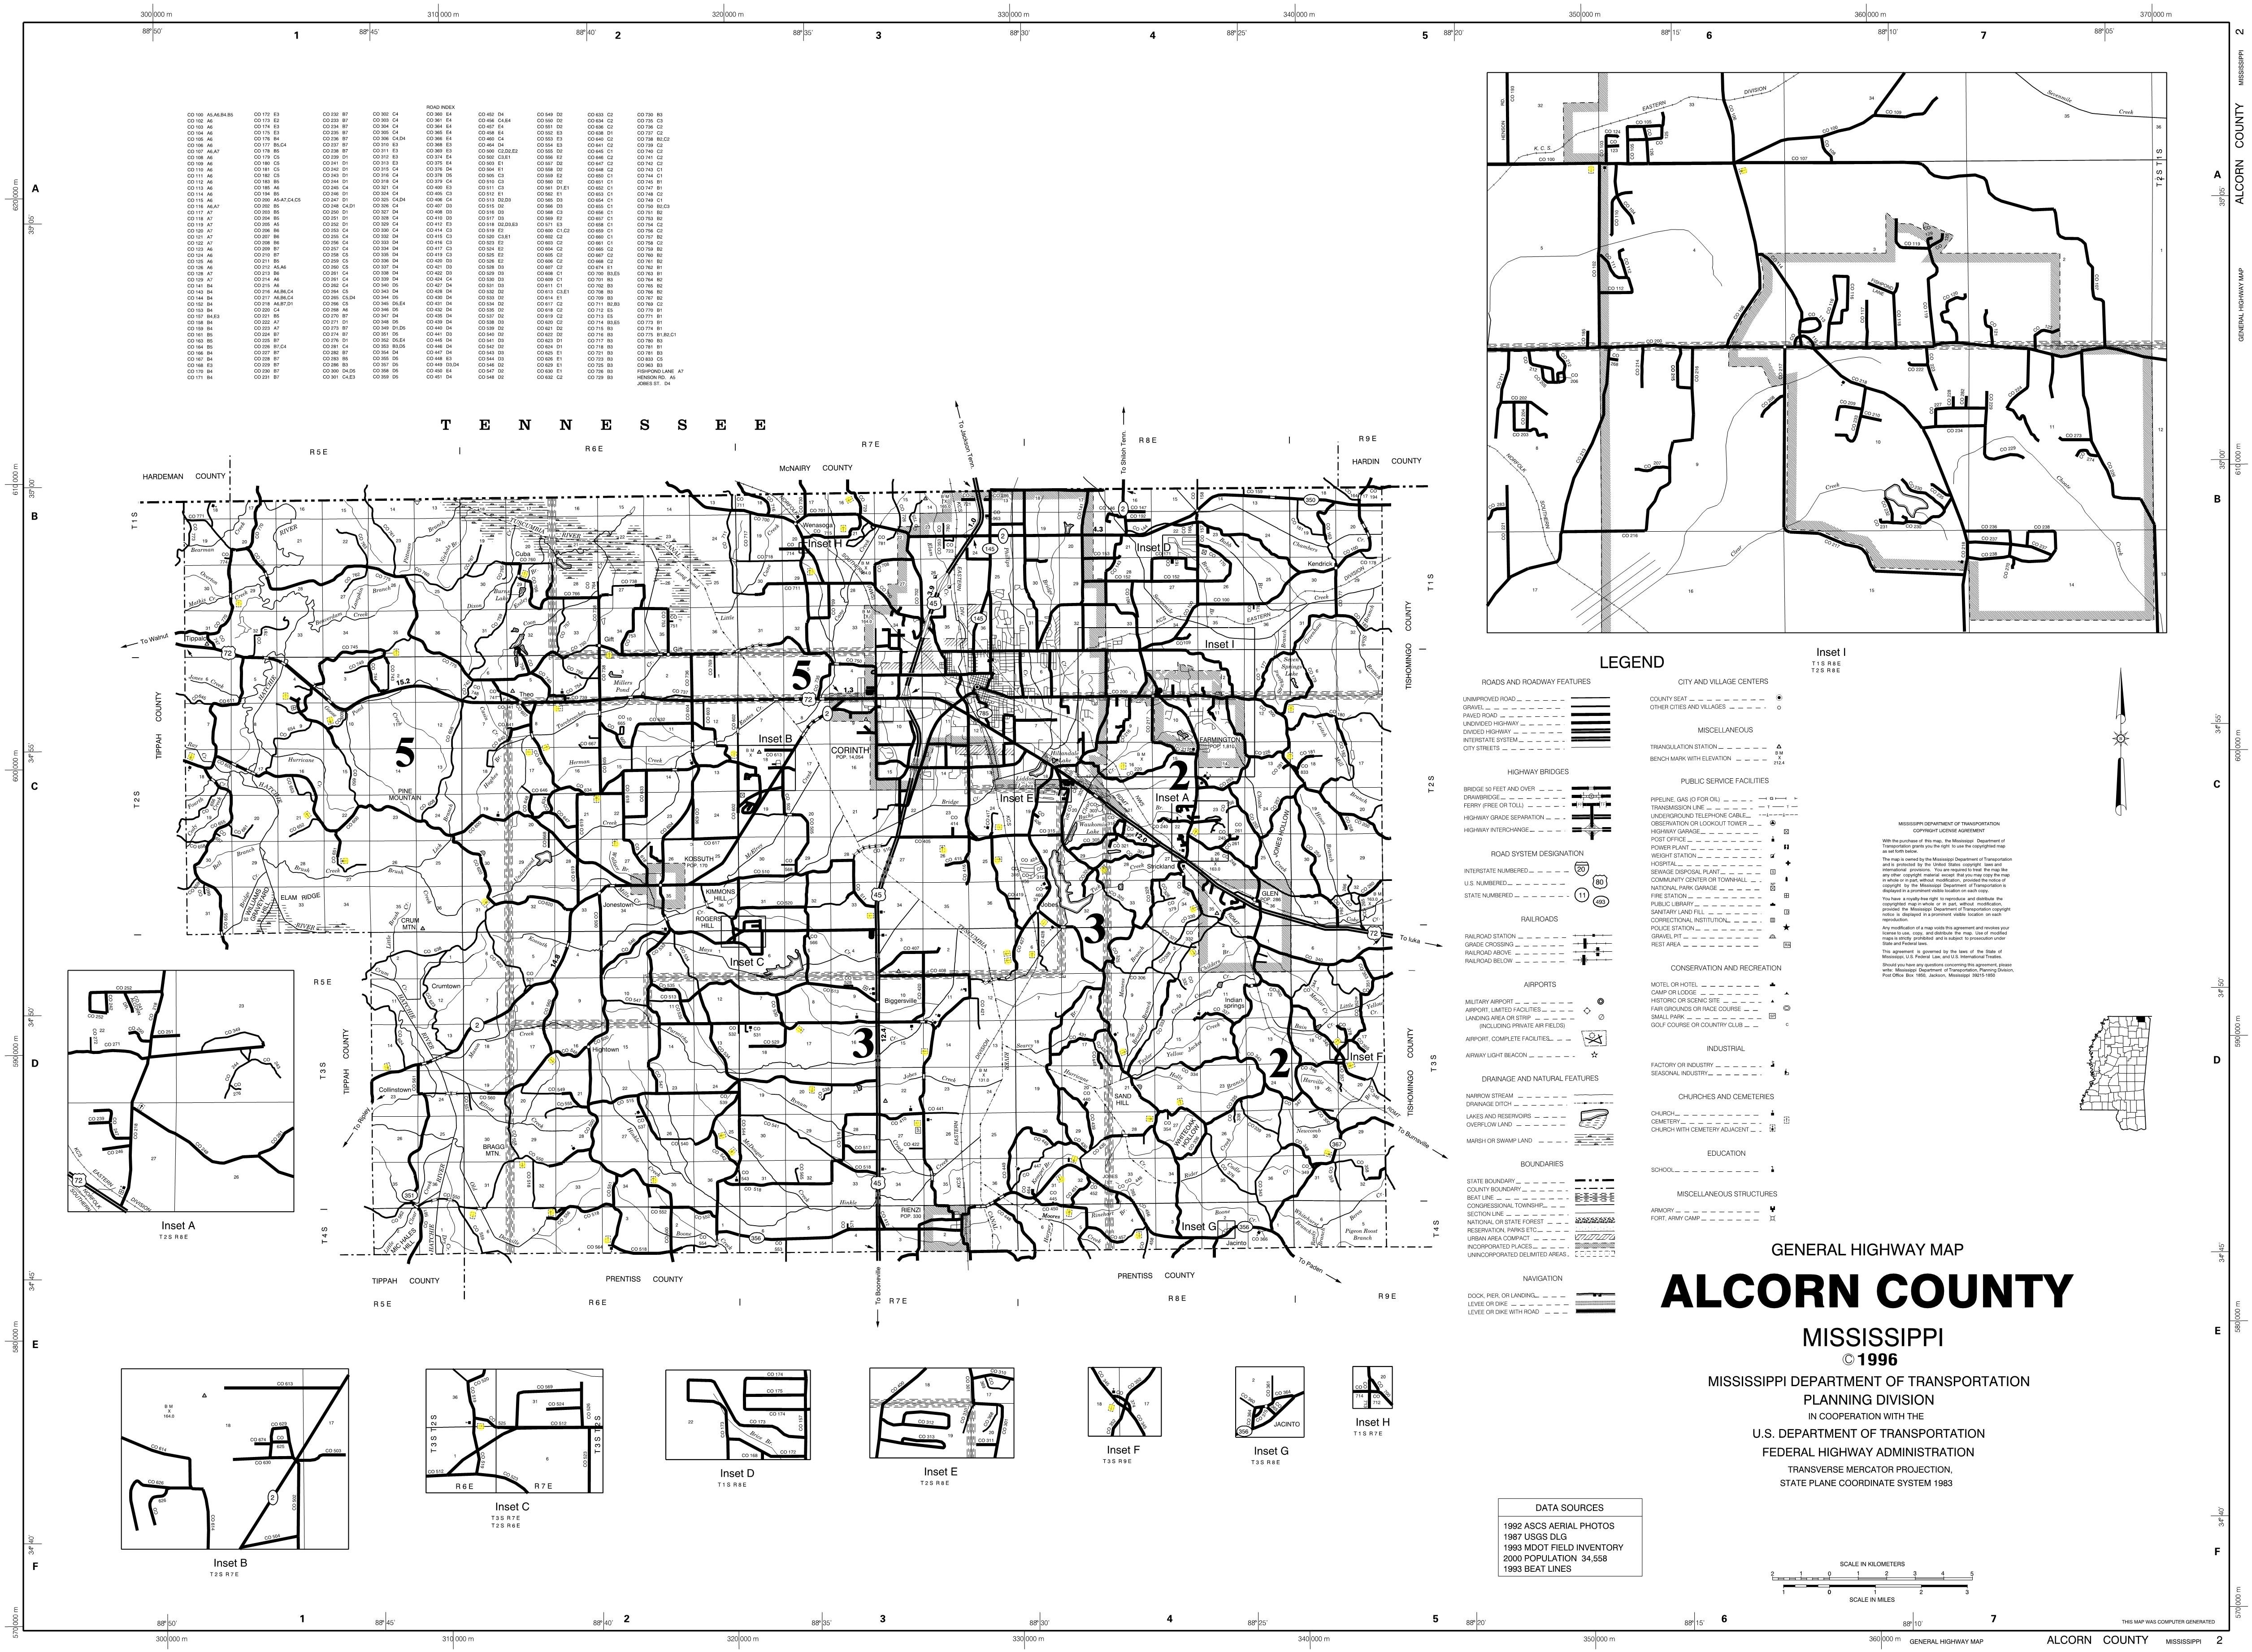 alcorn county Homescom alcorn county ms real estate: search homes for sale and mls listings in alcorn county, mississippi local information: 136 houses for sale, 0 condos, 0 foreclosure listings.